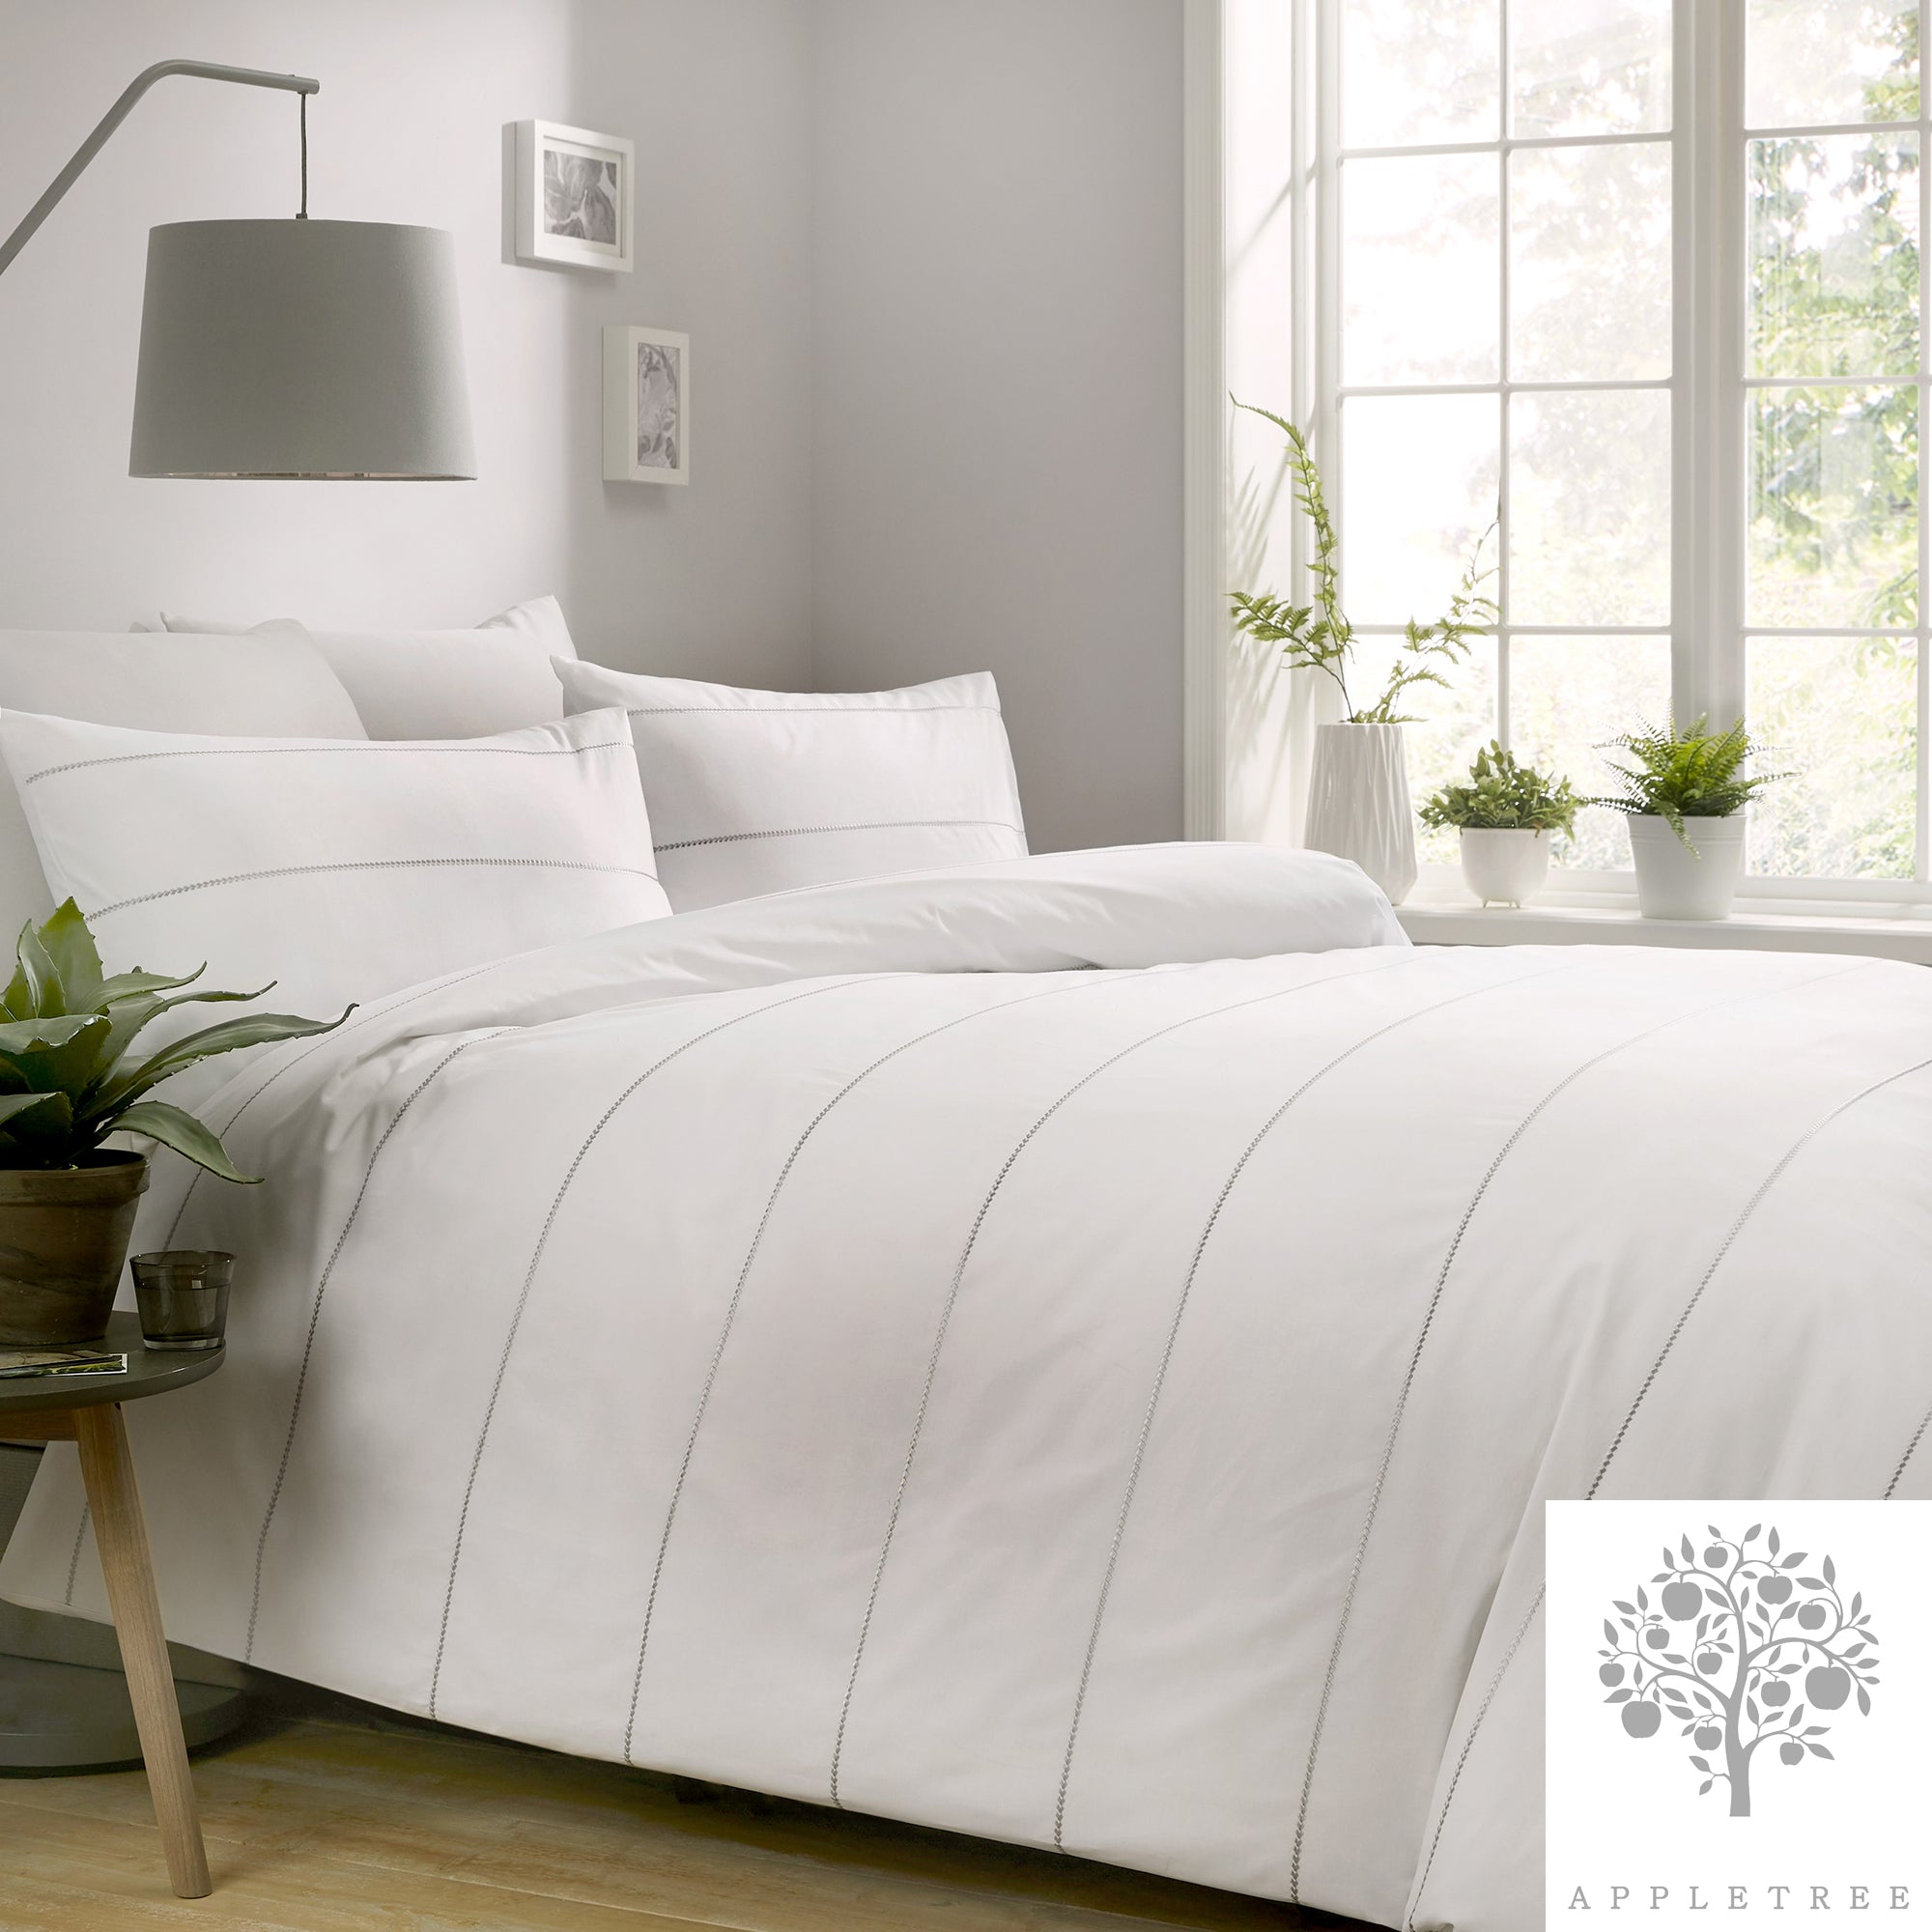 Salcombe White - 100% Embroidered Cotton Duvet Cover Set by Appletree Boutique